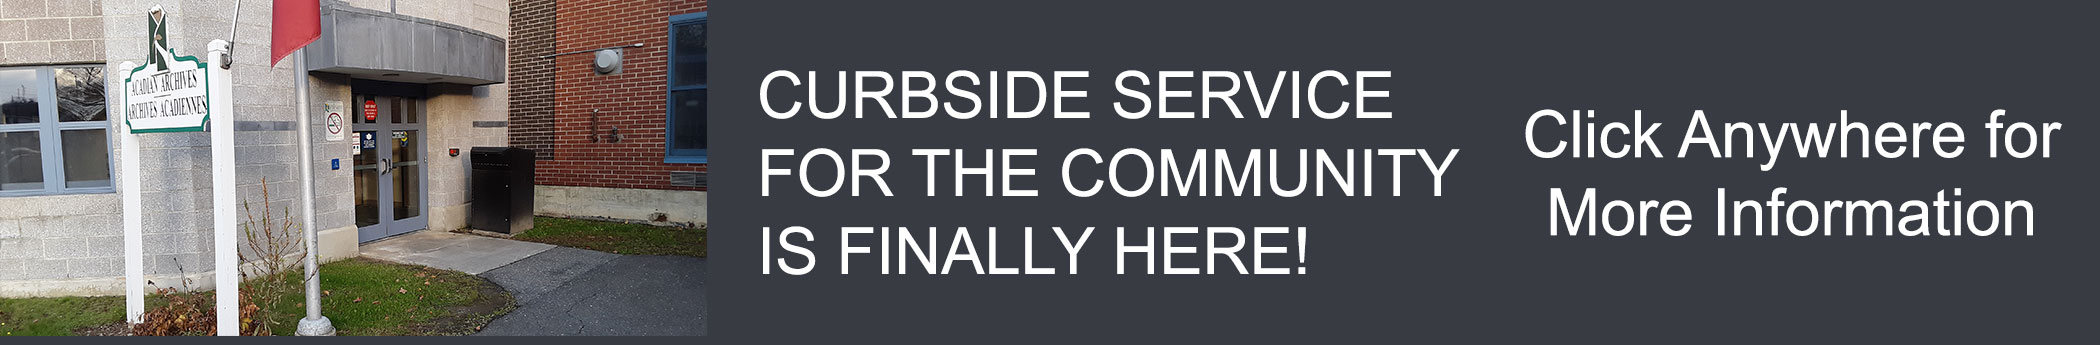 curbside service is here click for more information